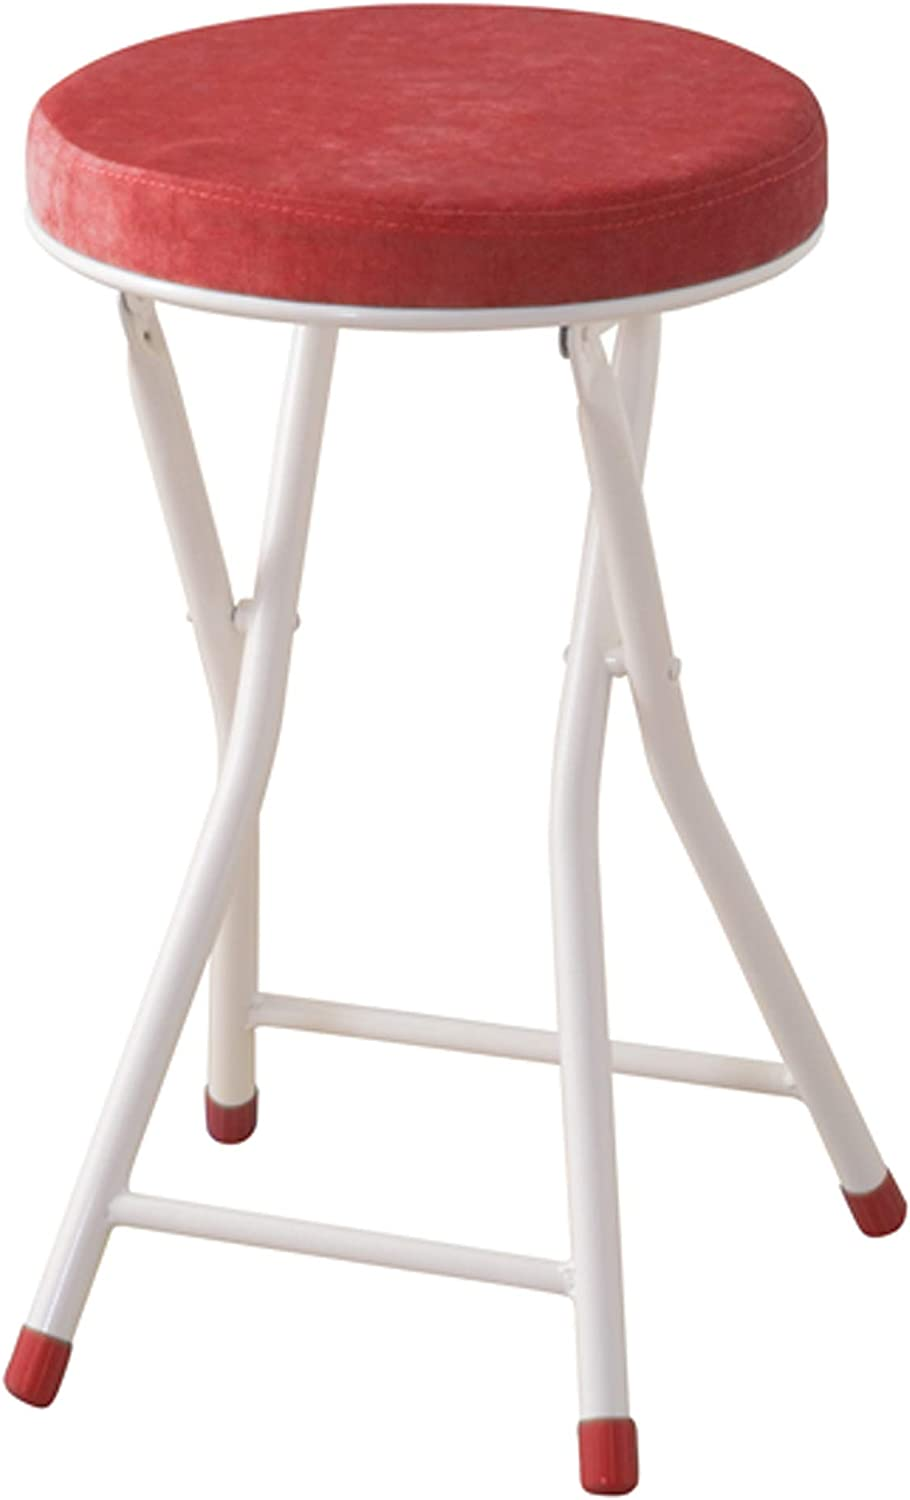 AZUMAYA Red Folding Stool Chair 19.3  Height, Steel Frame and Textile Fabric Seat Top RED PC-31RD